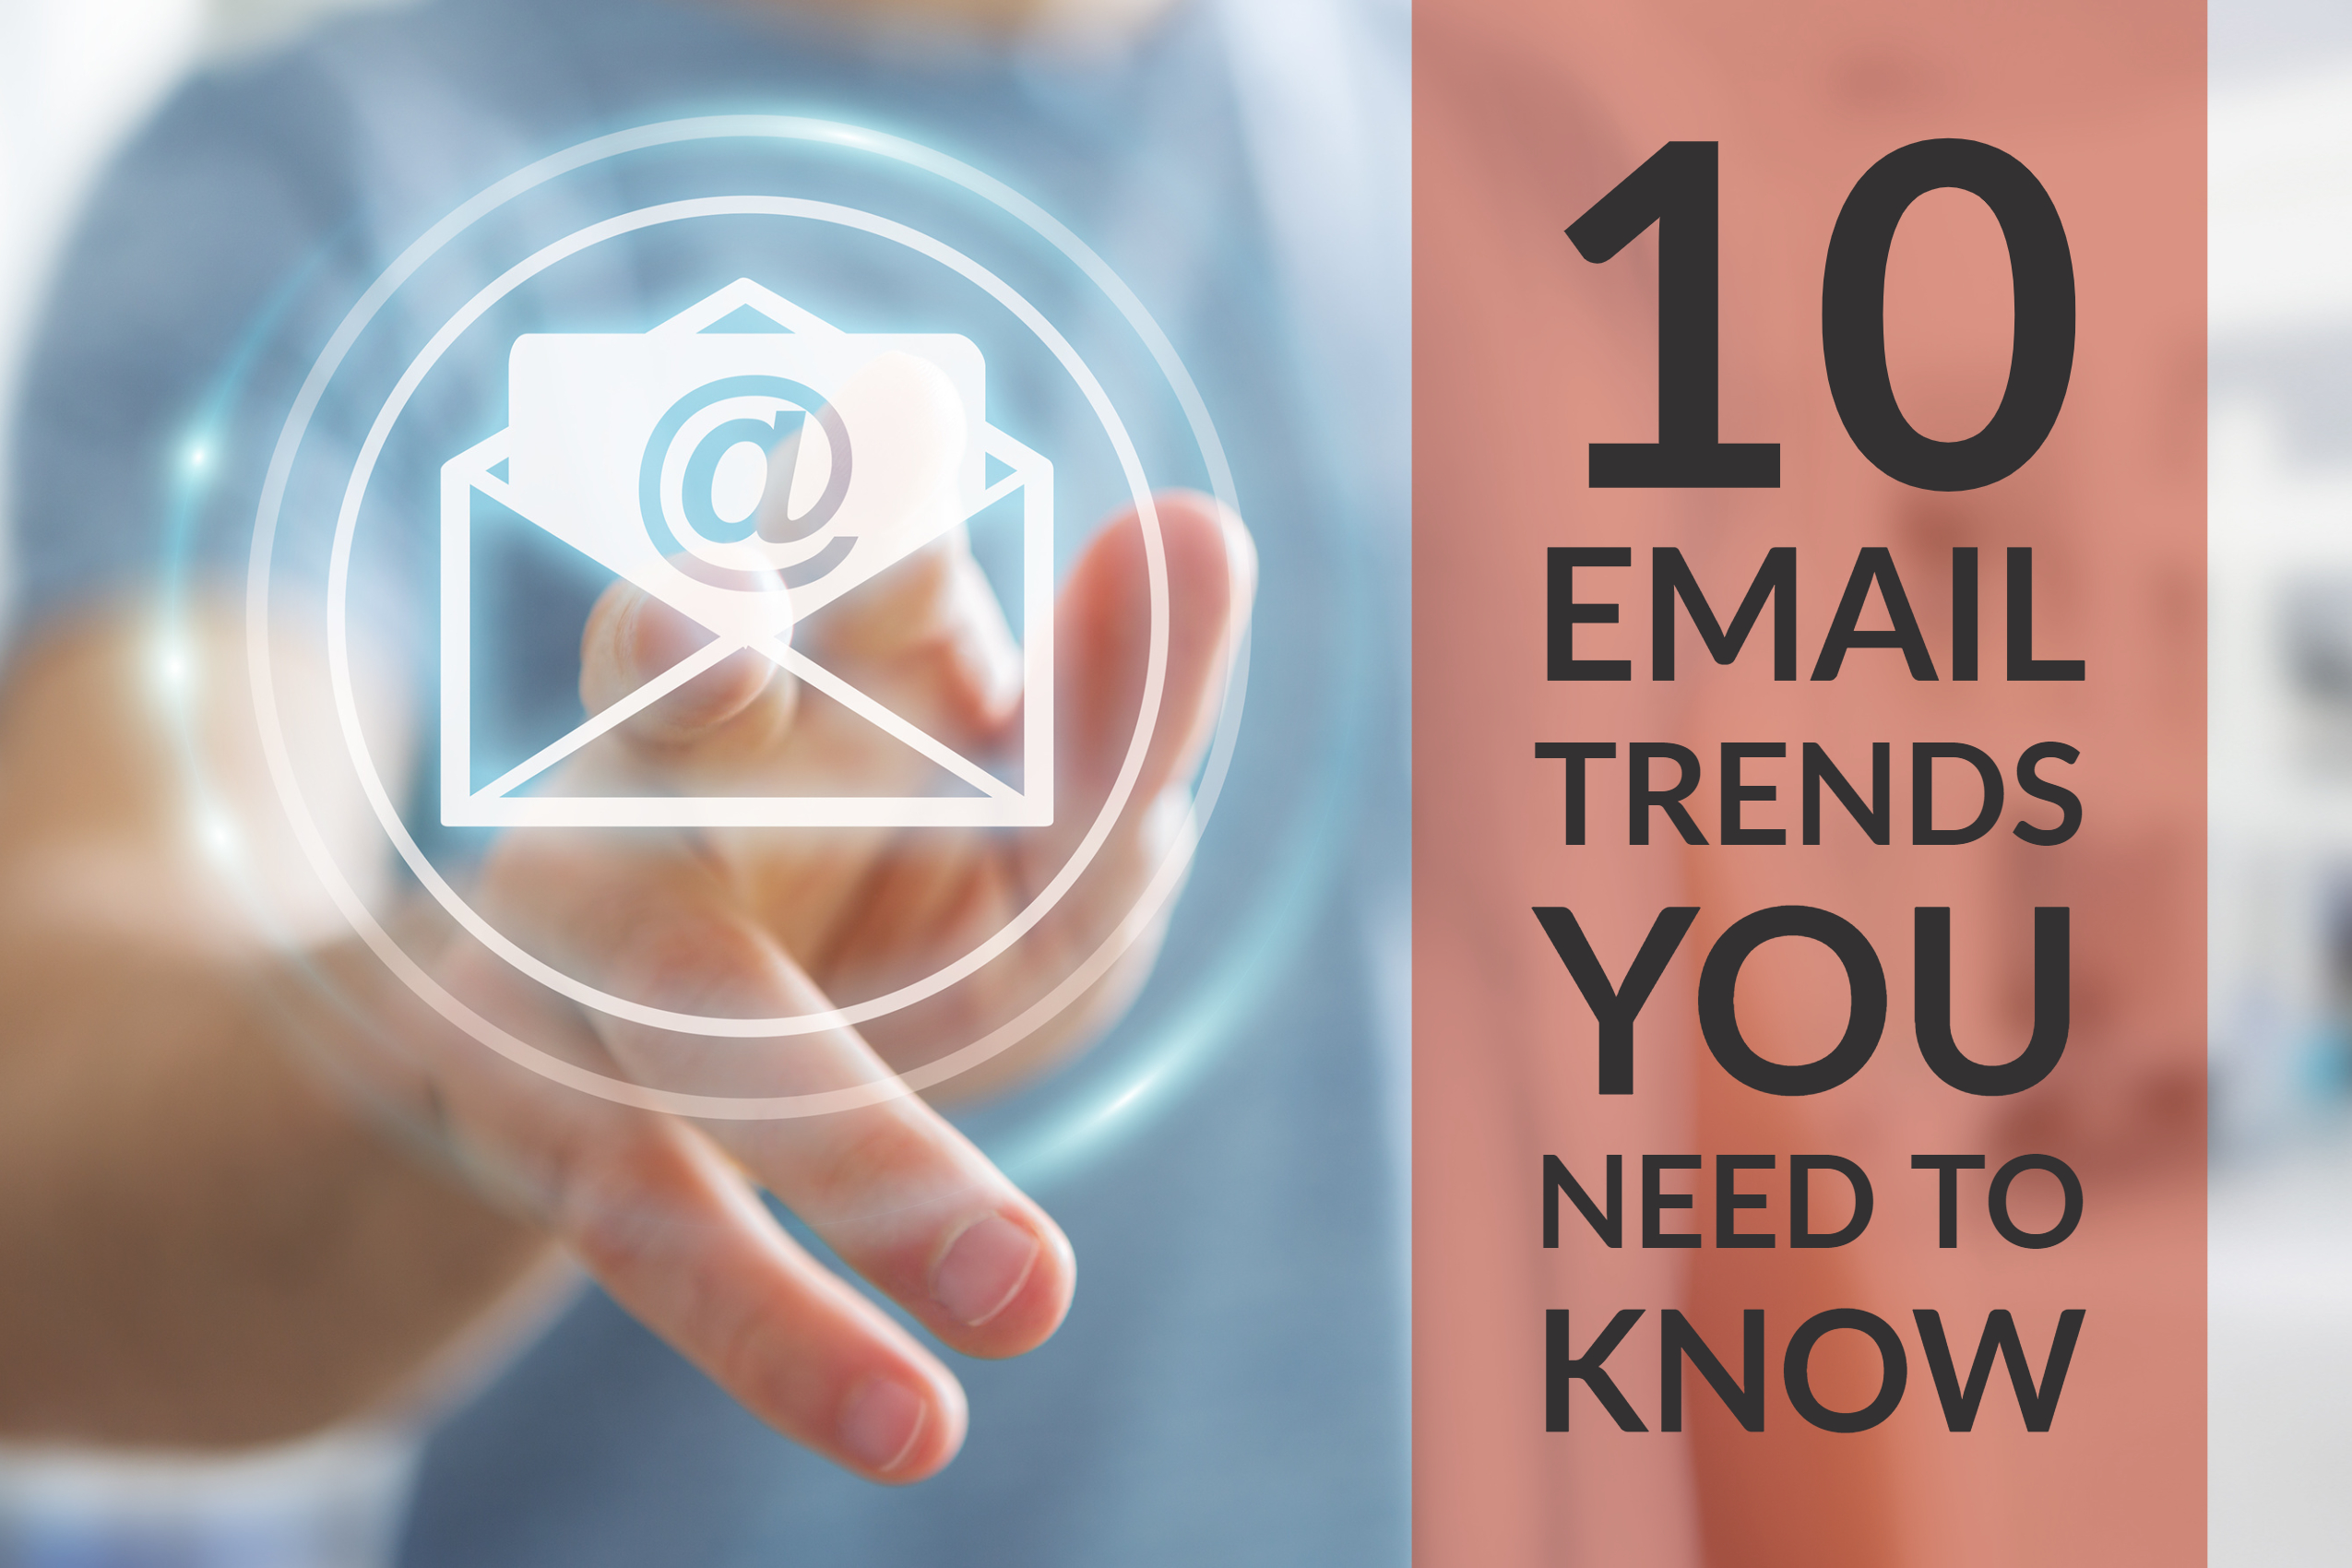 10 Email Trends You Need To Know